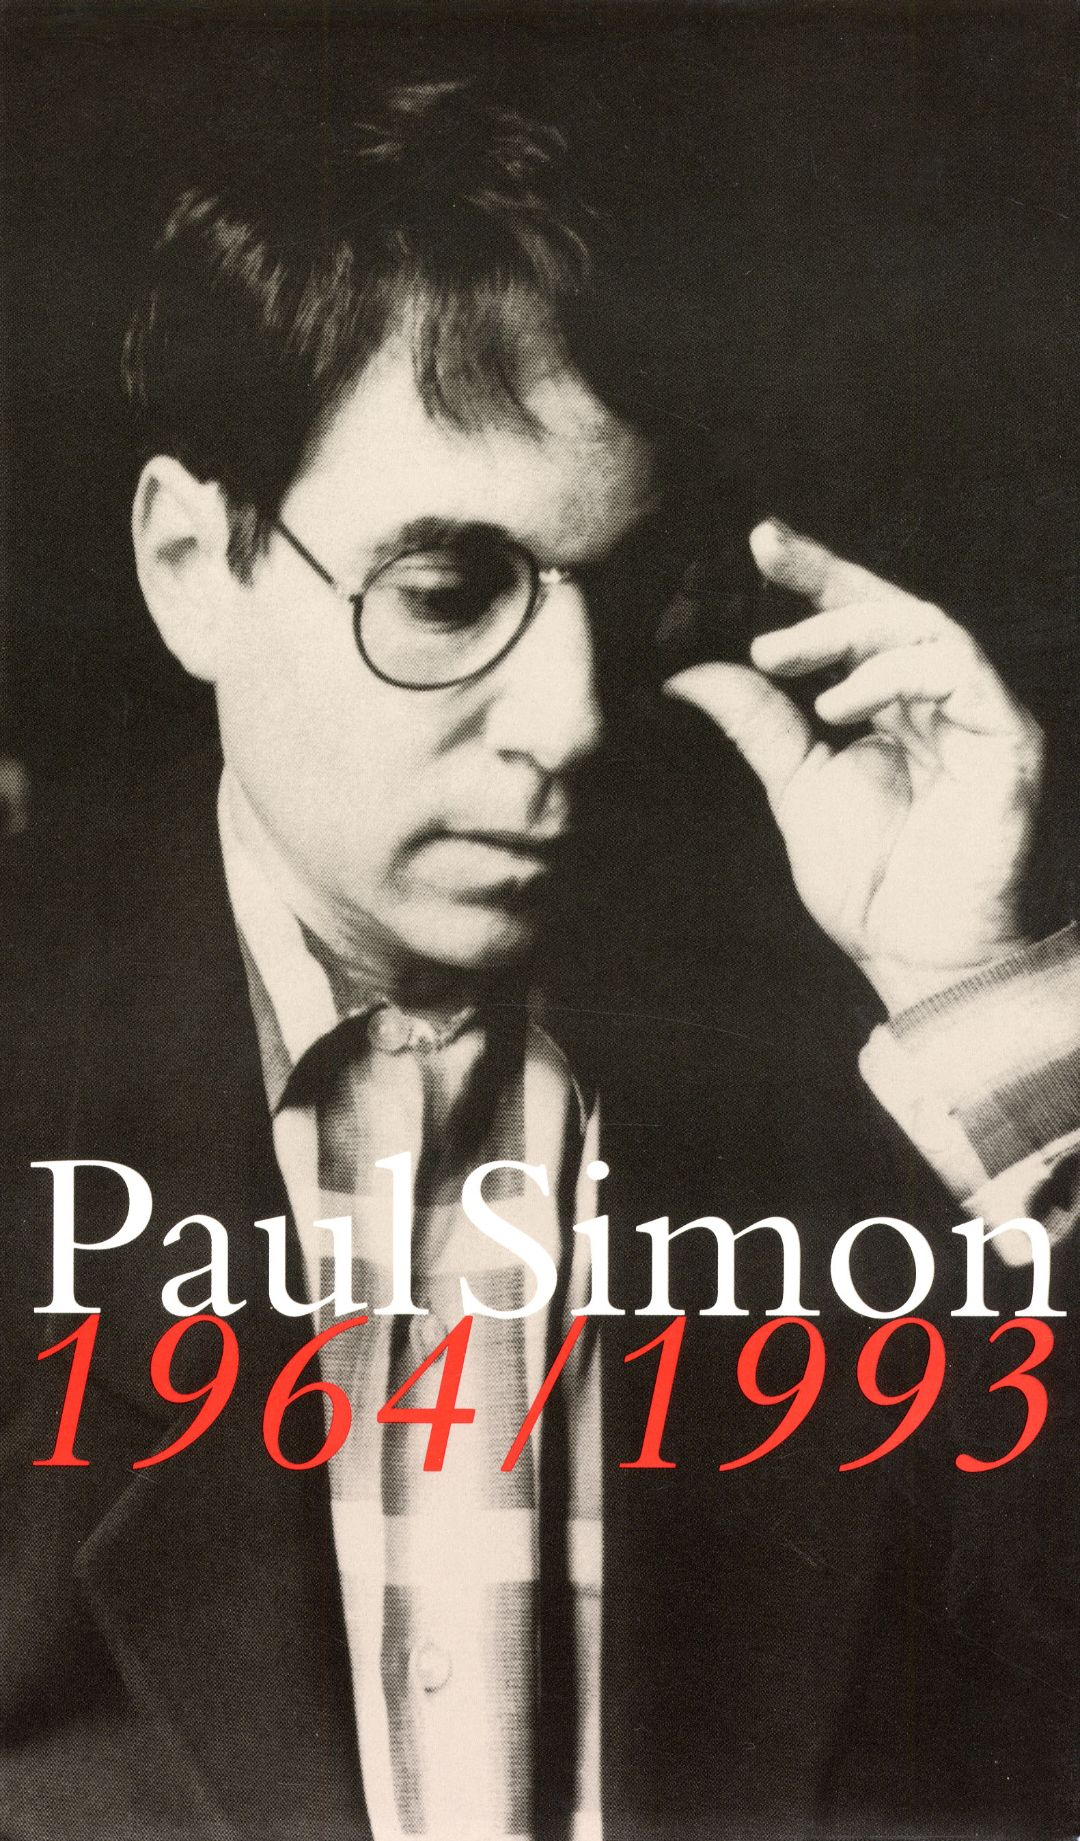 Paul Simon 1964/1993